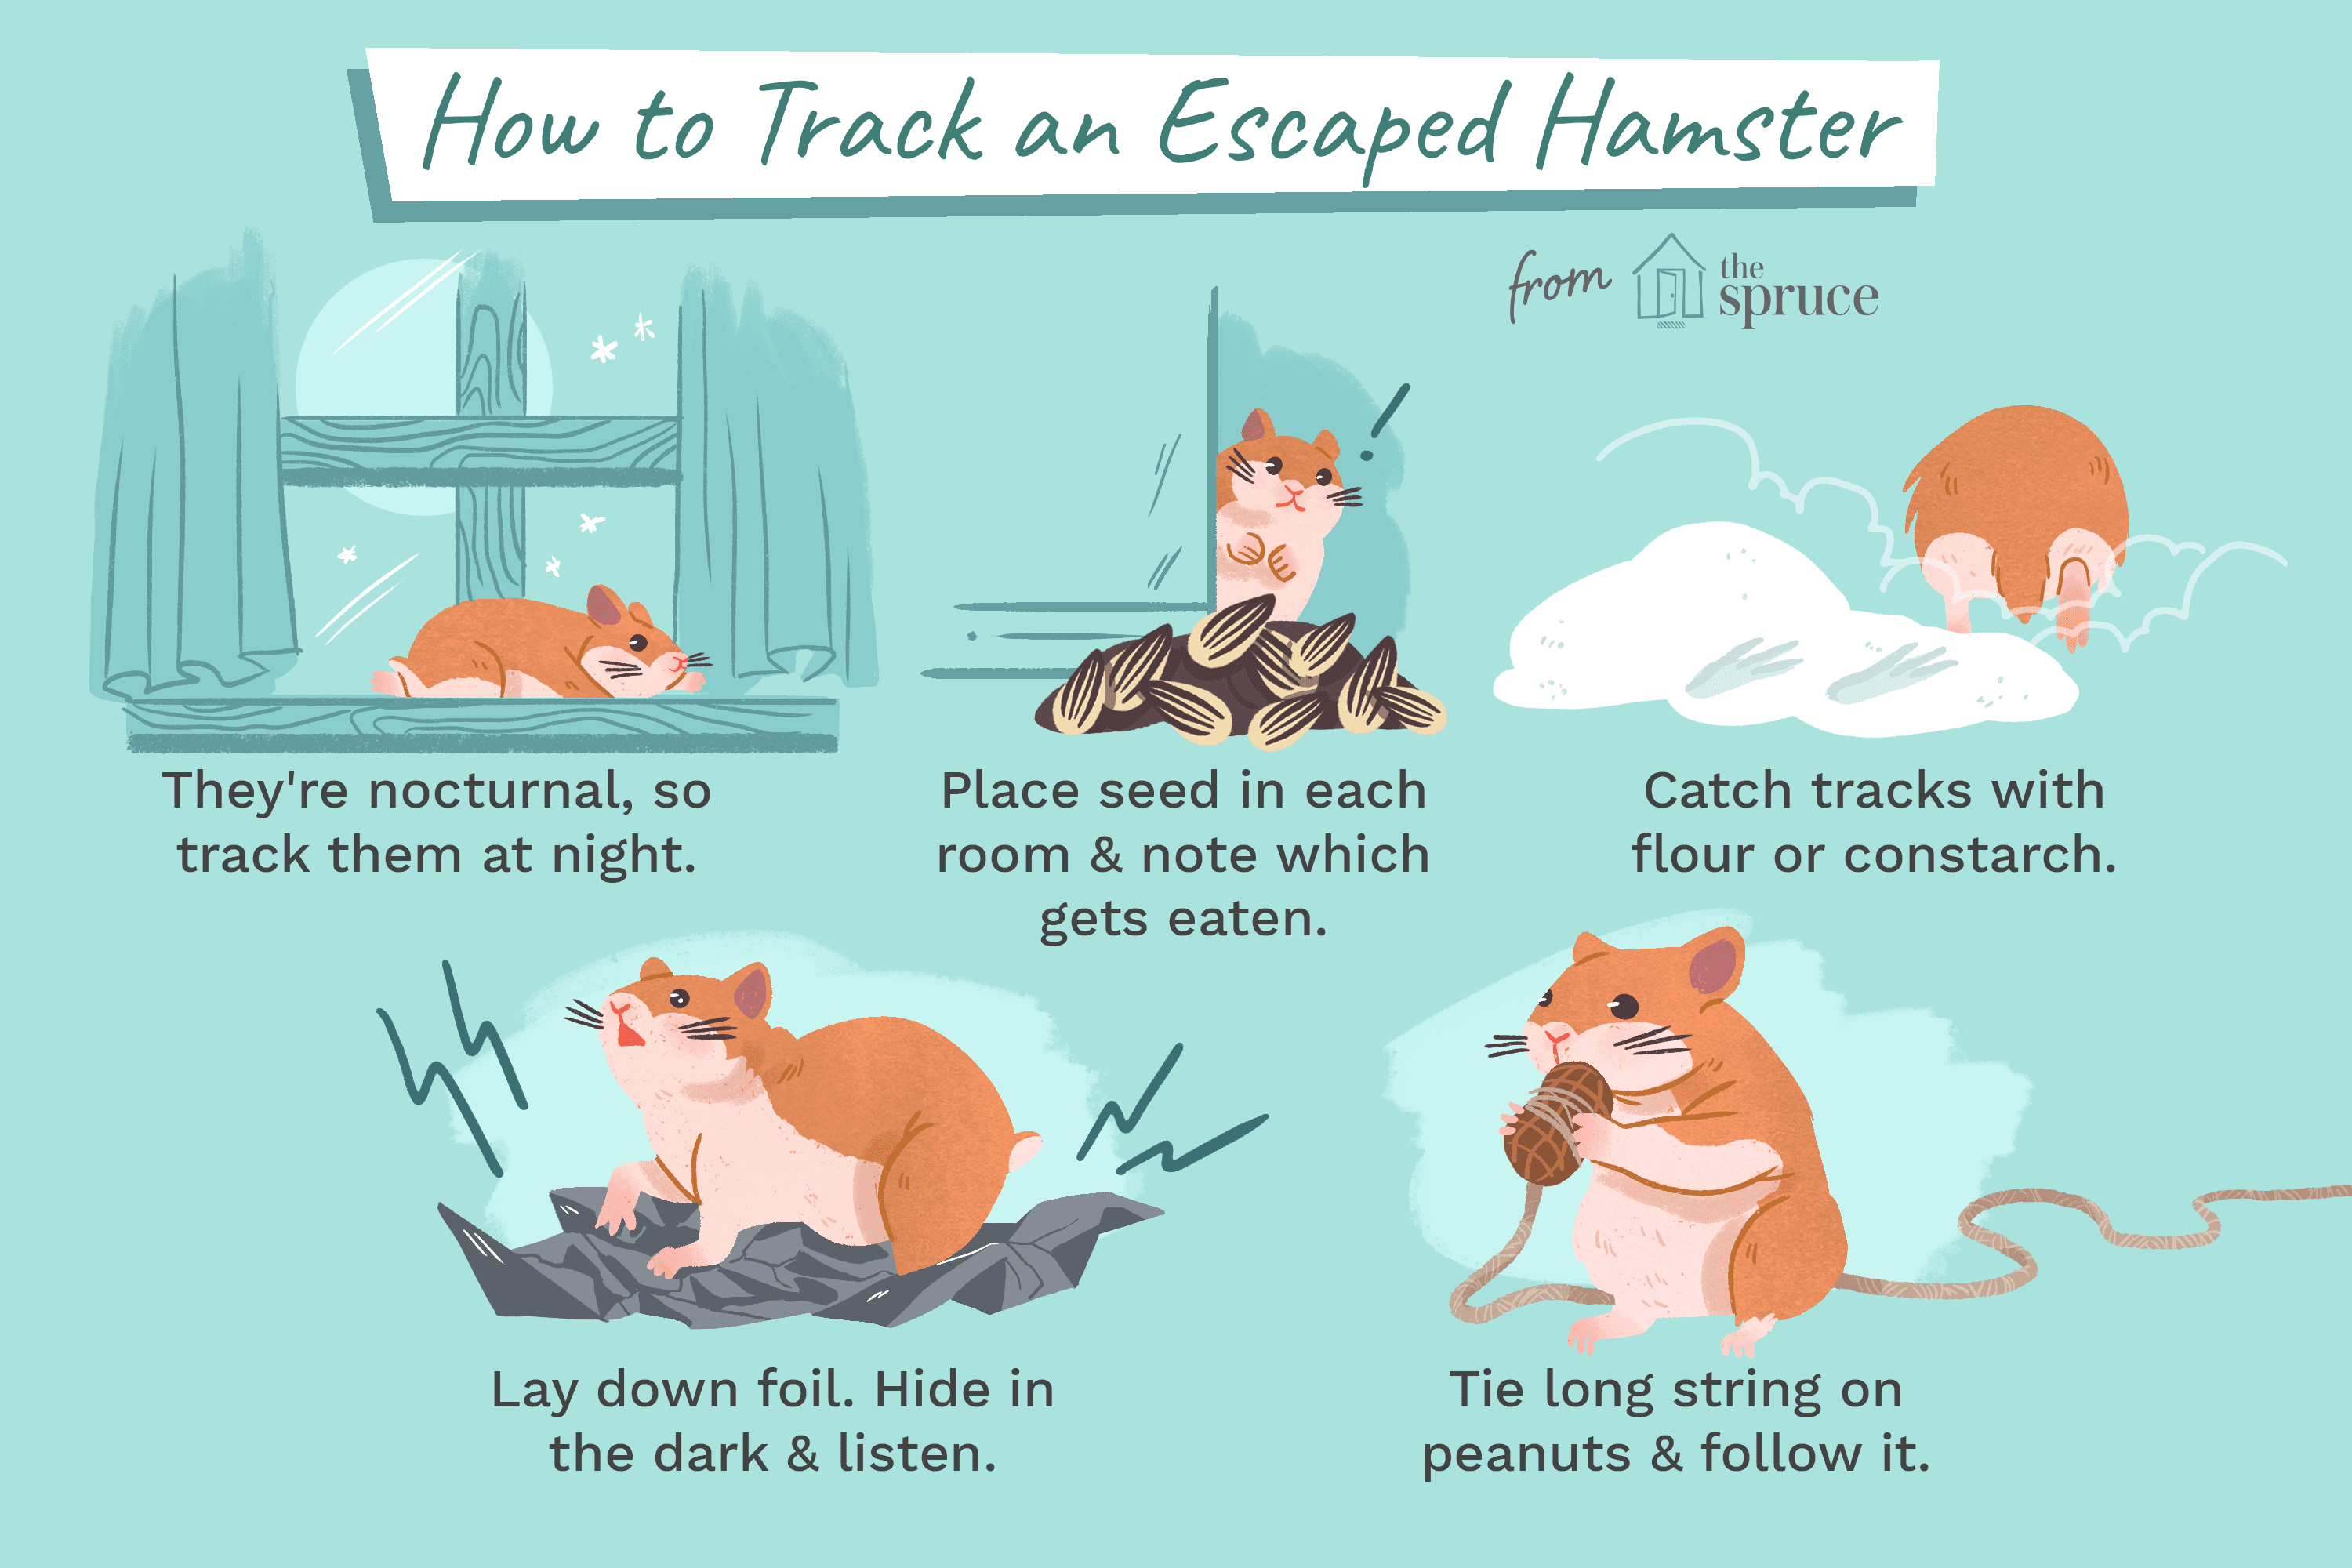 Tips and Tricks to Find a Lost Hamster